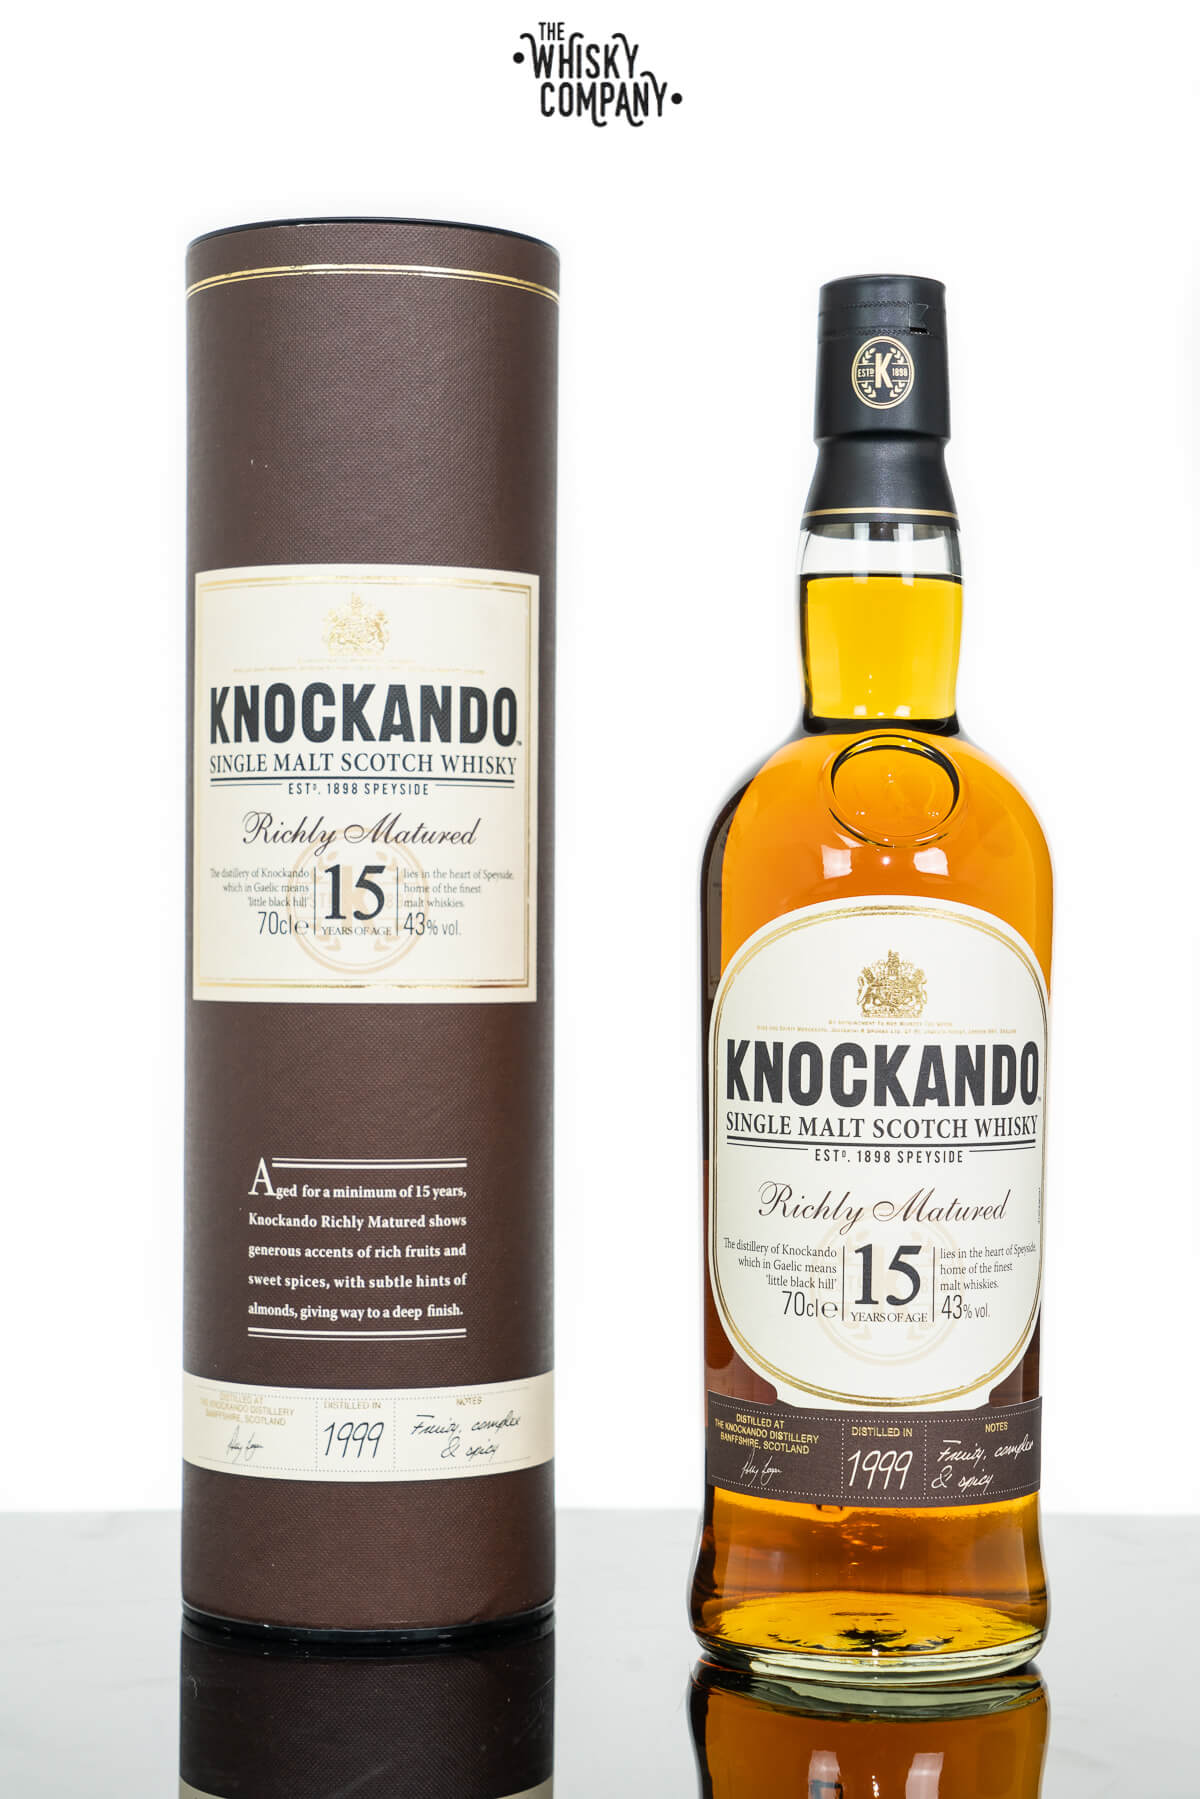 Knockando Aged 15 Years Speyside Single Malt Scotch Whisky (700ml)